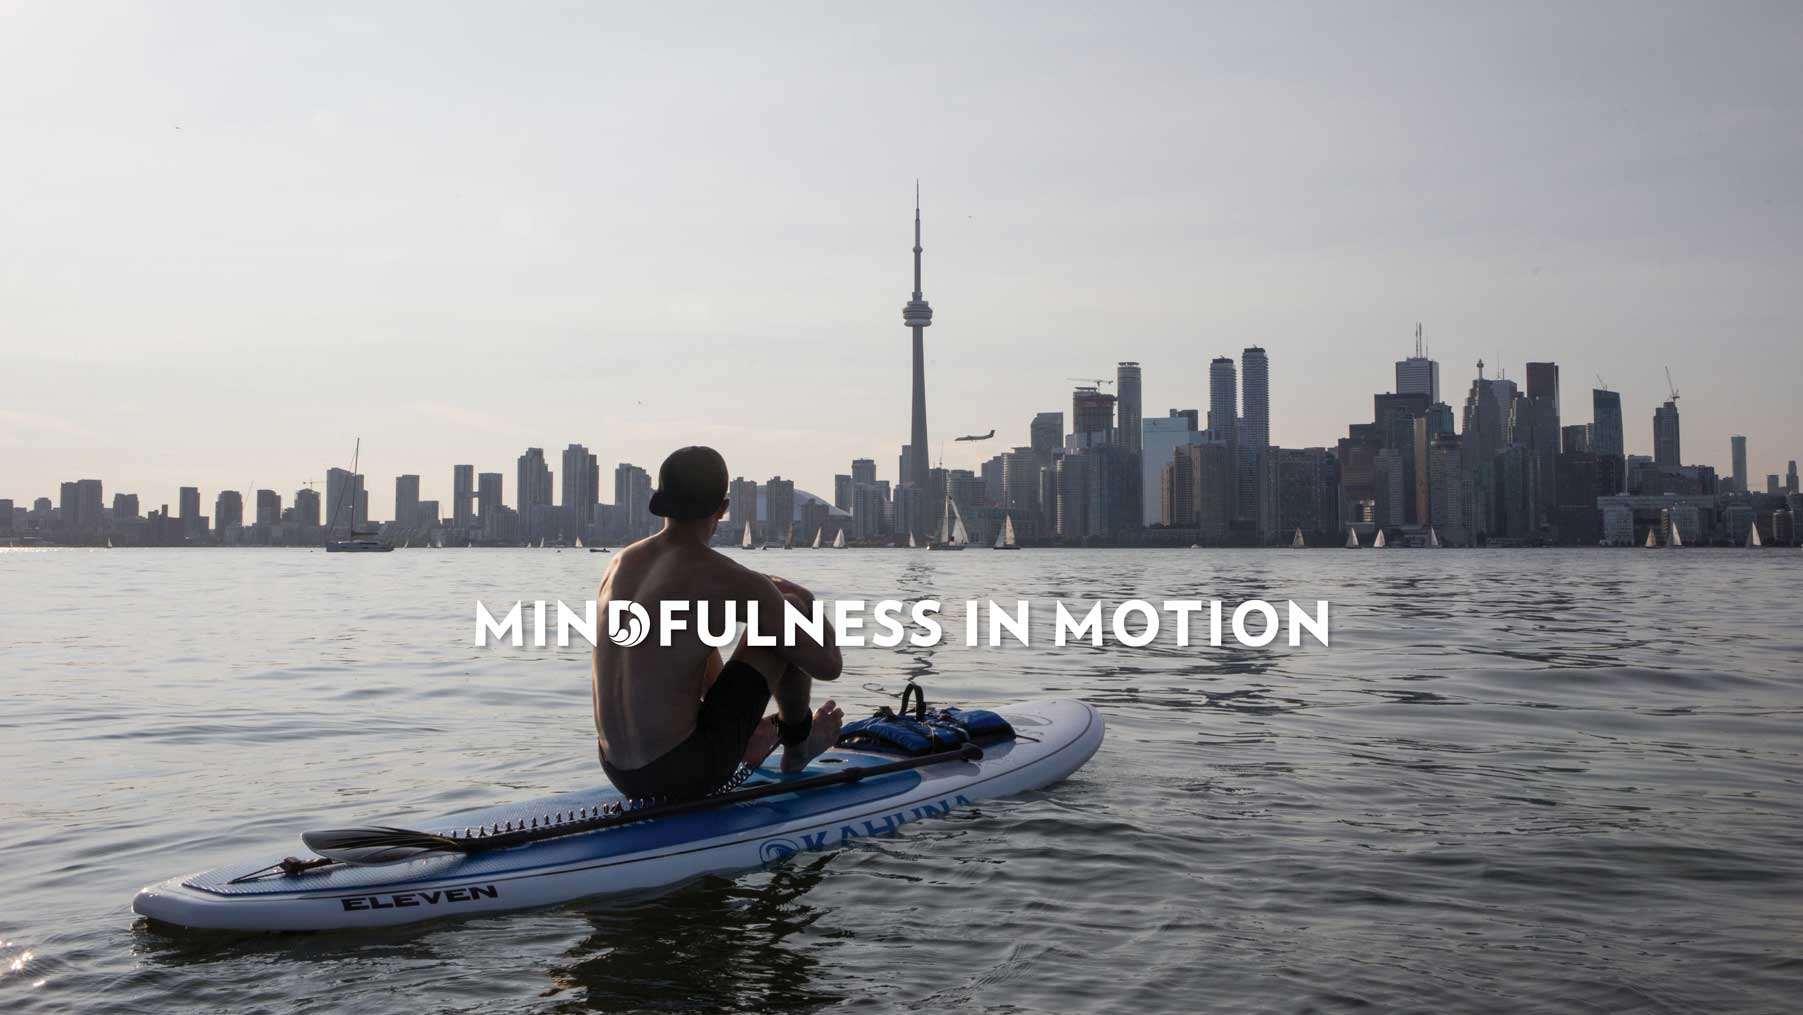 Midfulness in Motion SUP Meditation Toronto Standup Paddleboarding